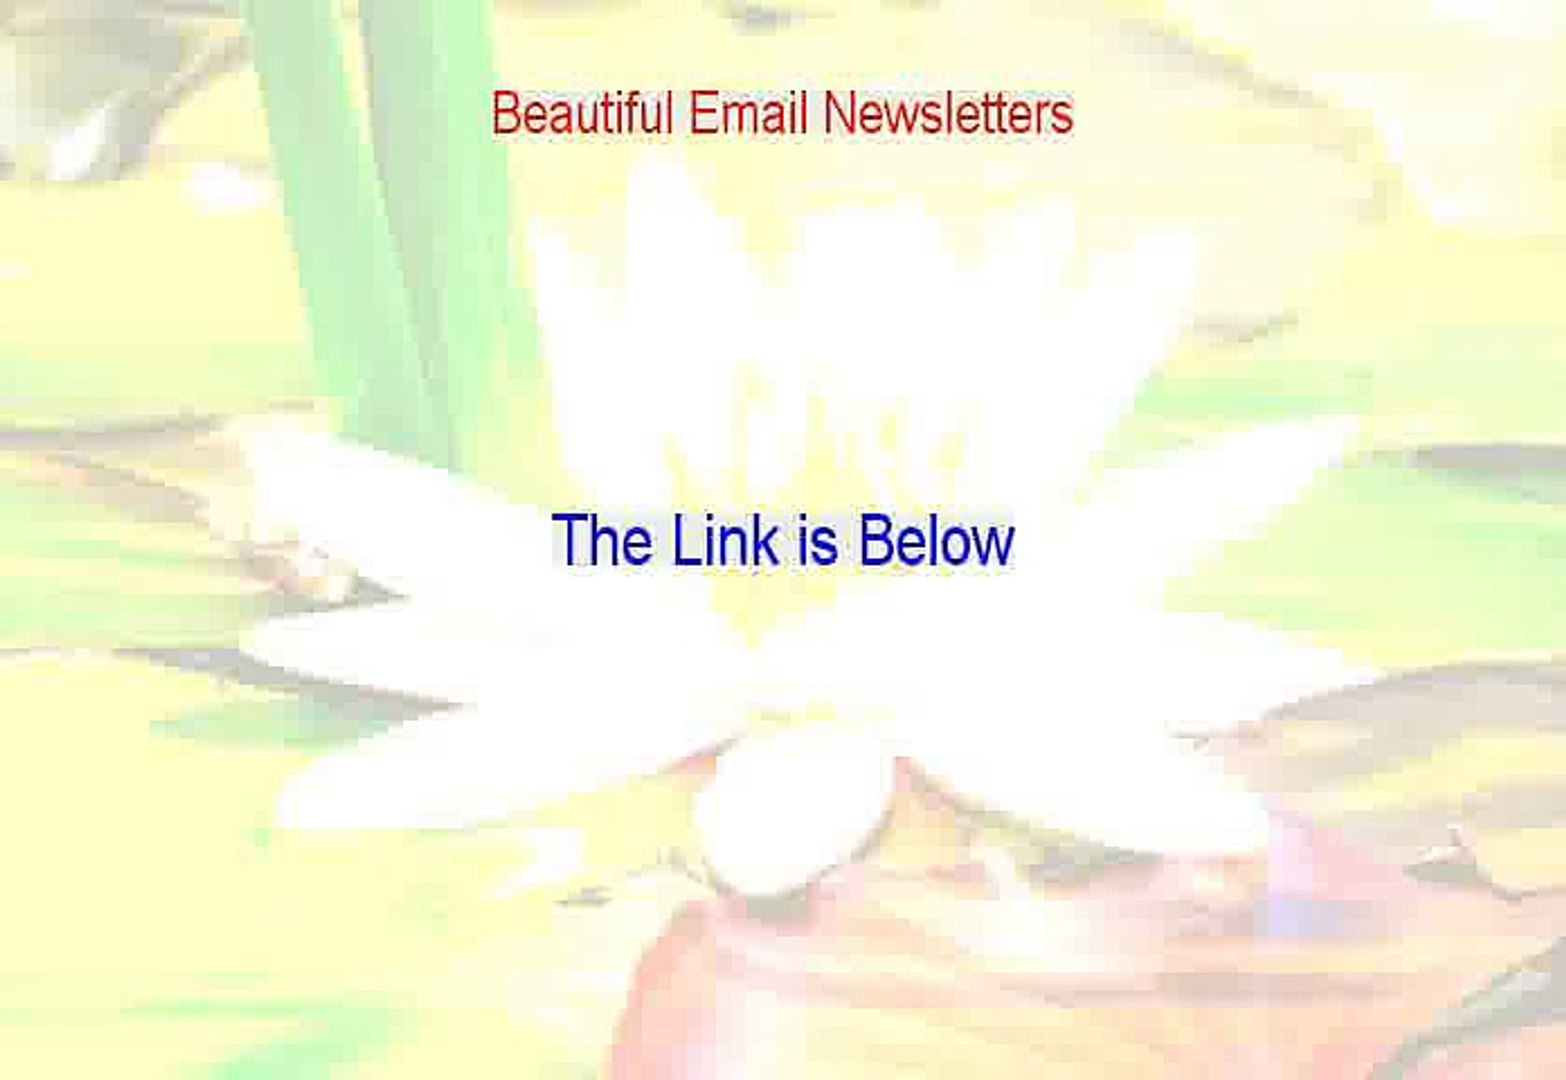 Beautiful Email Newsletters Download [send beautiful email newsletters]